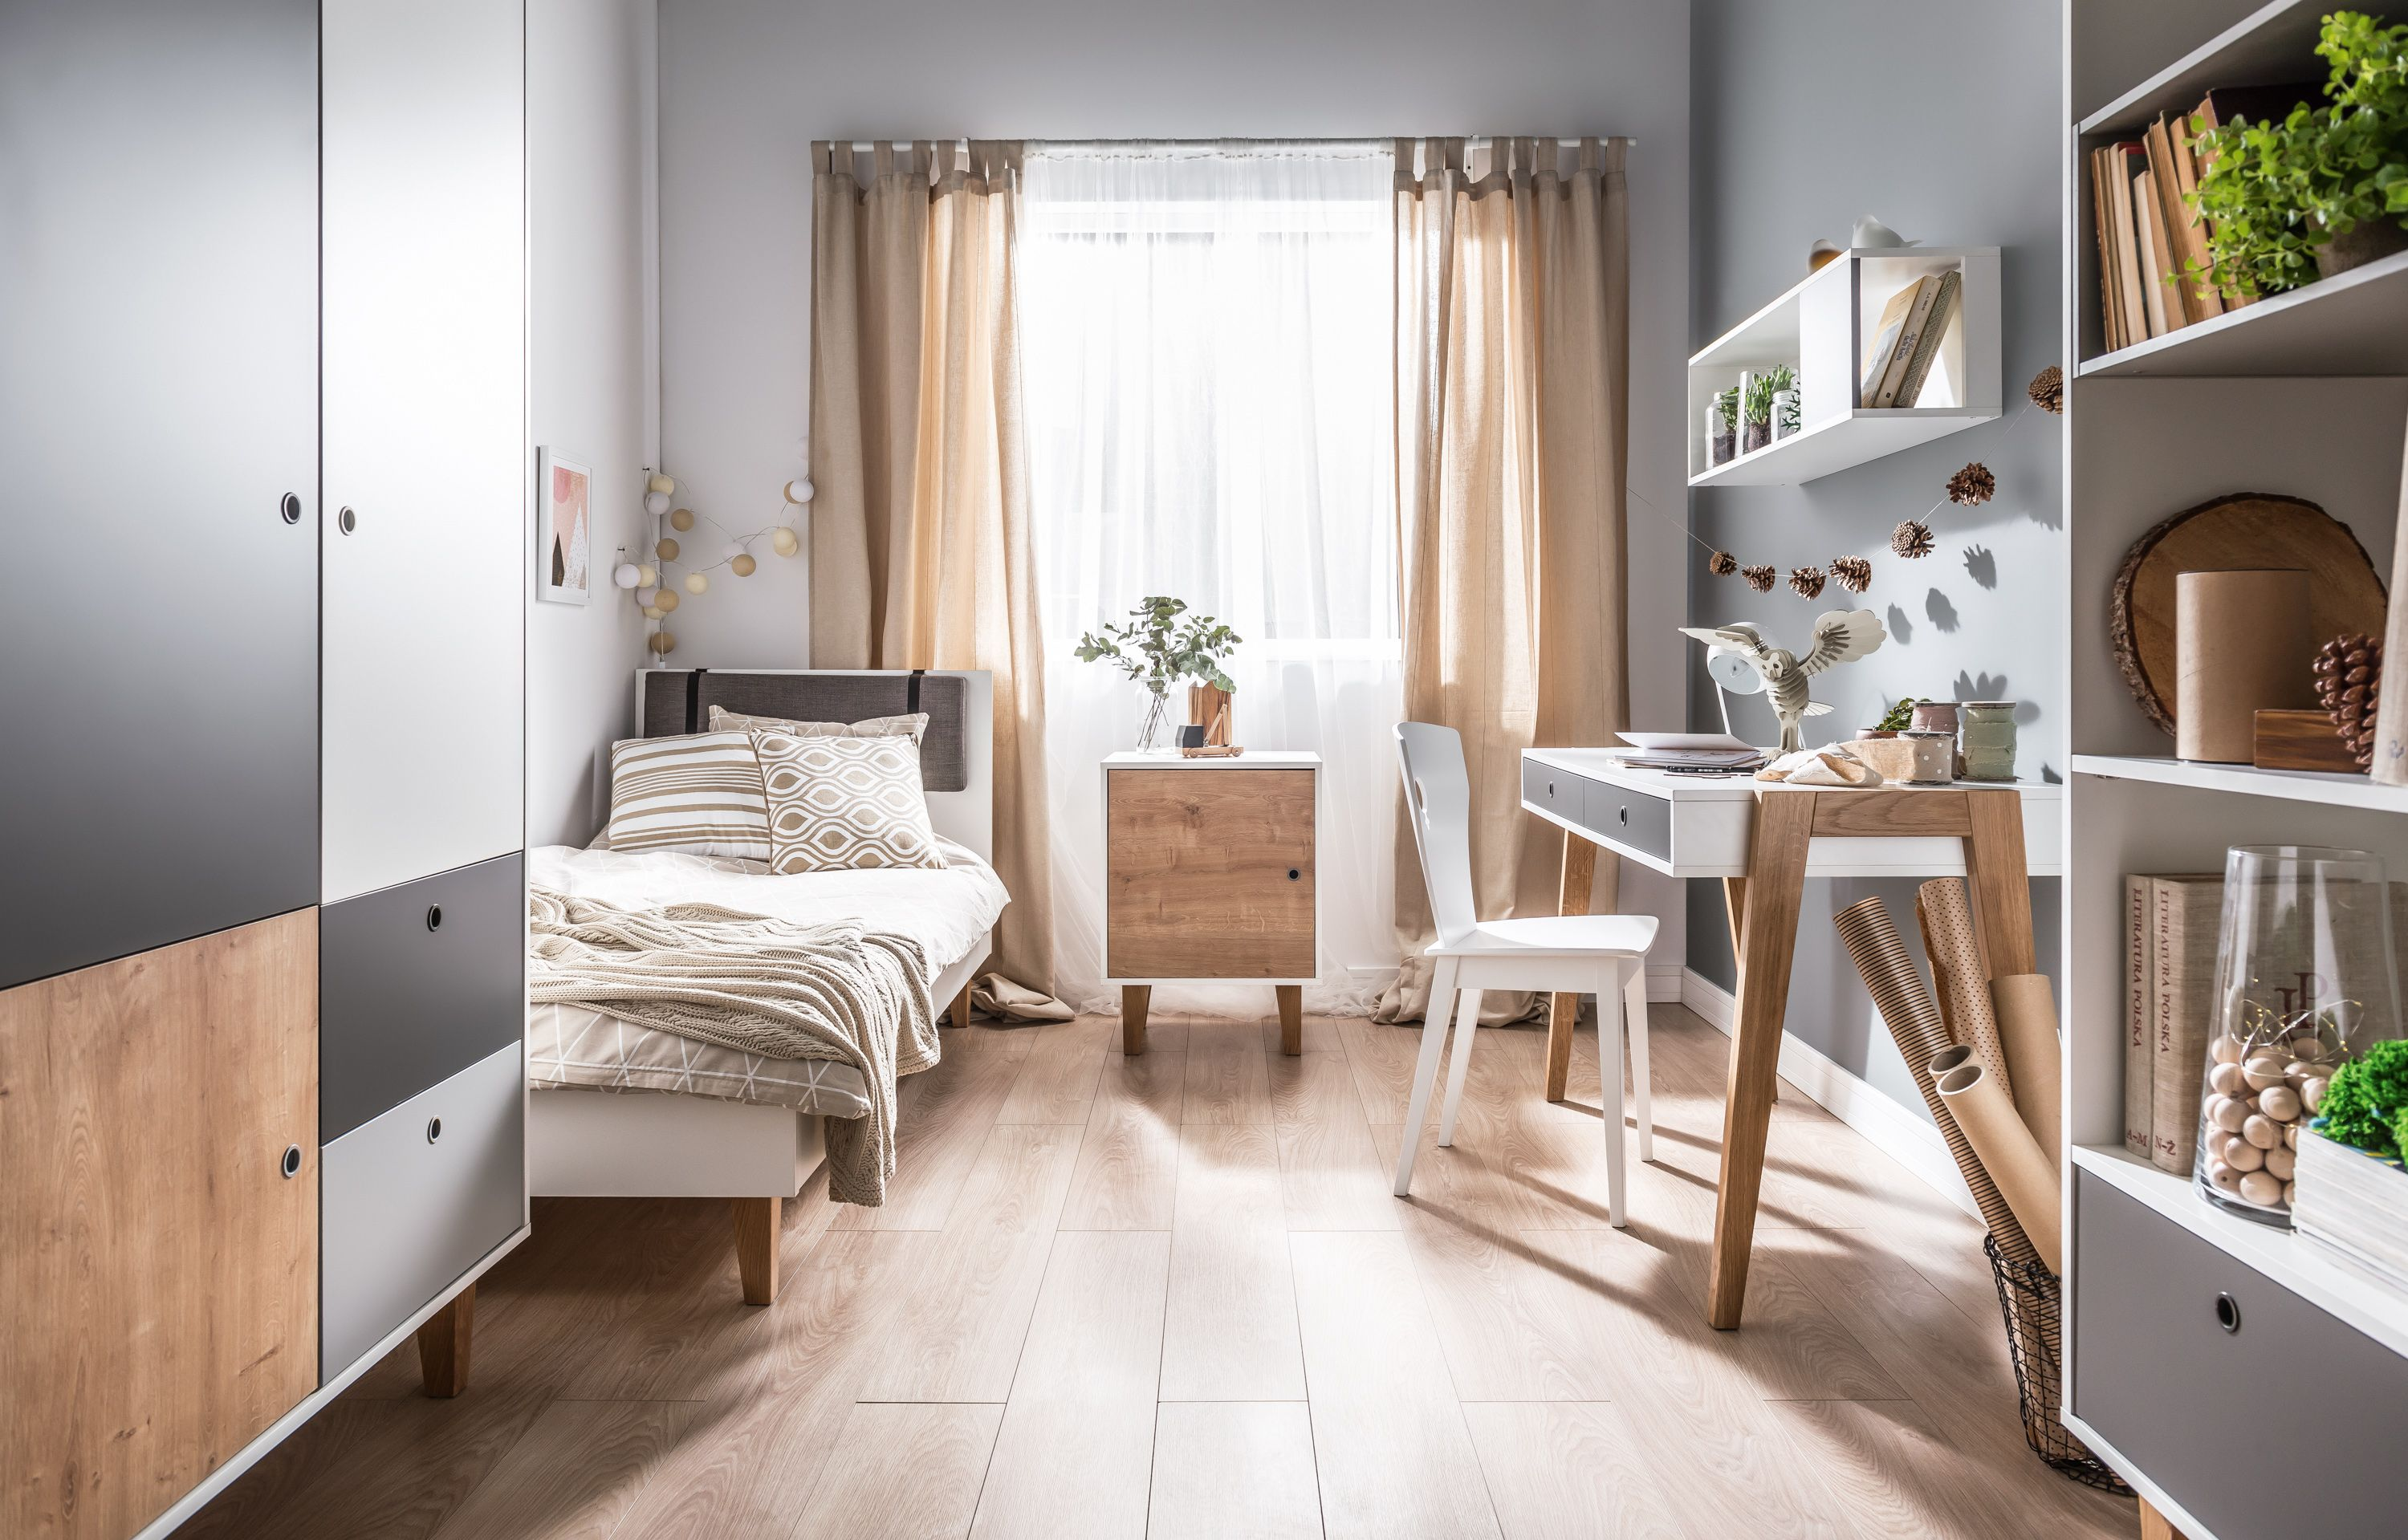 18 Small Bedroom Ideas To Fall In Love With - Small ... on Girl:u7_Sz_Dbse0= Small Bedroom Ideas  id=51807